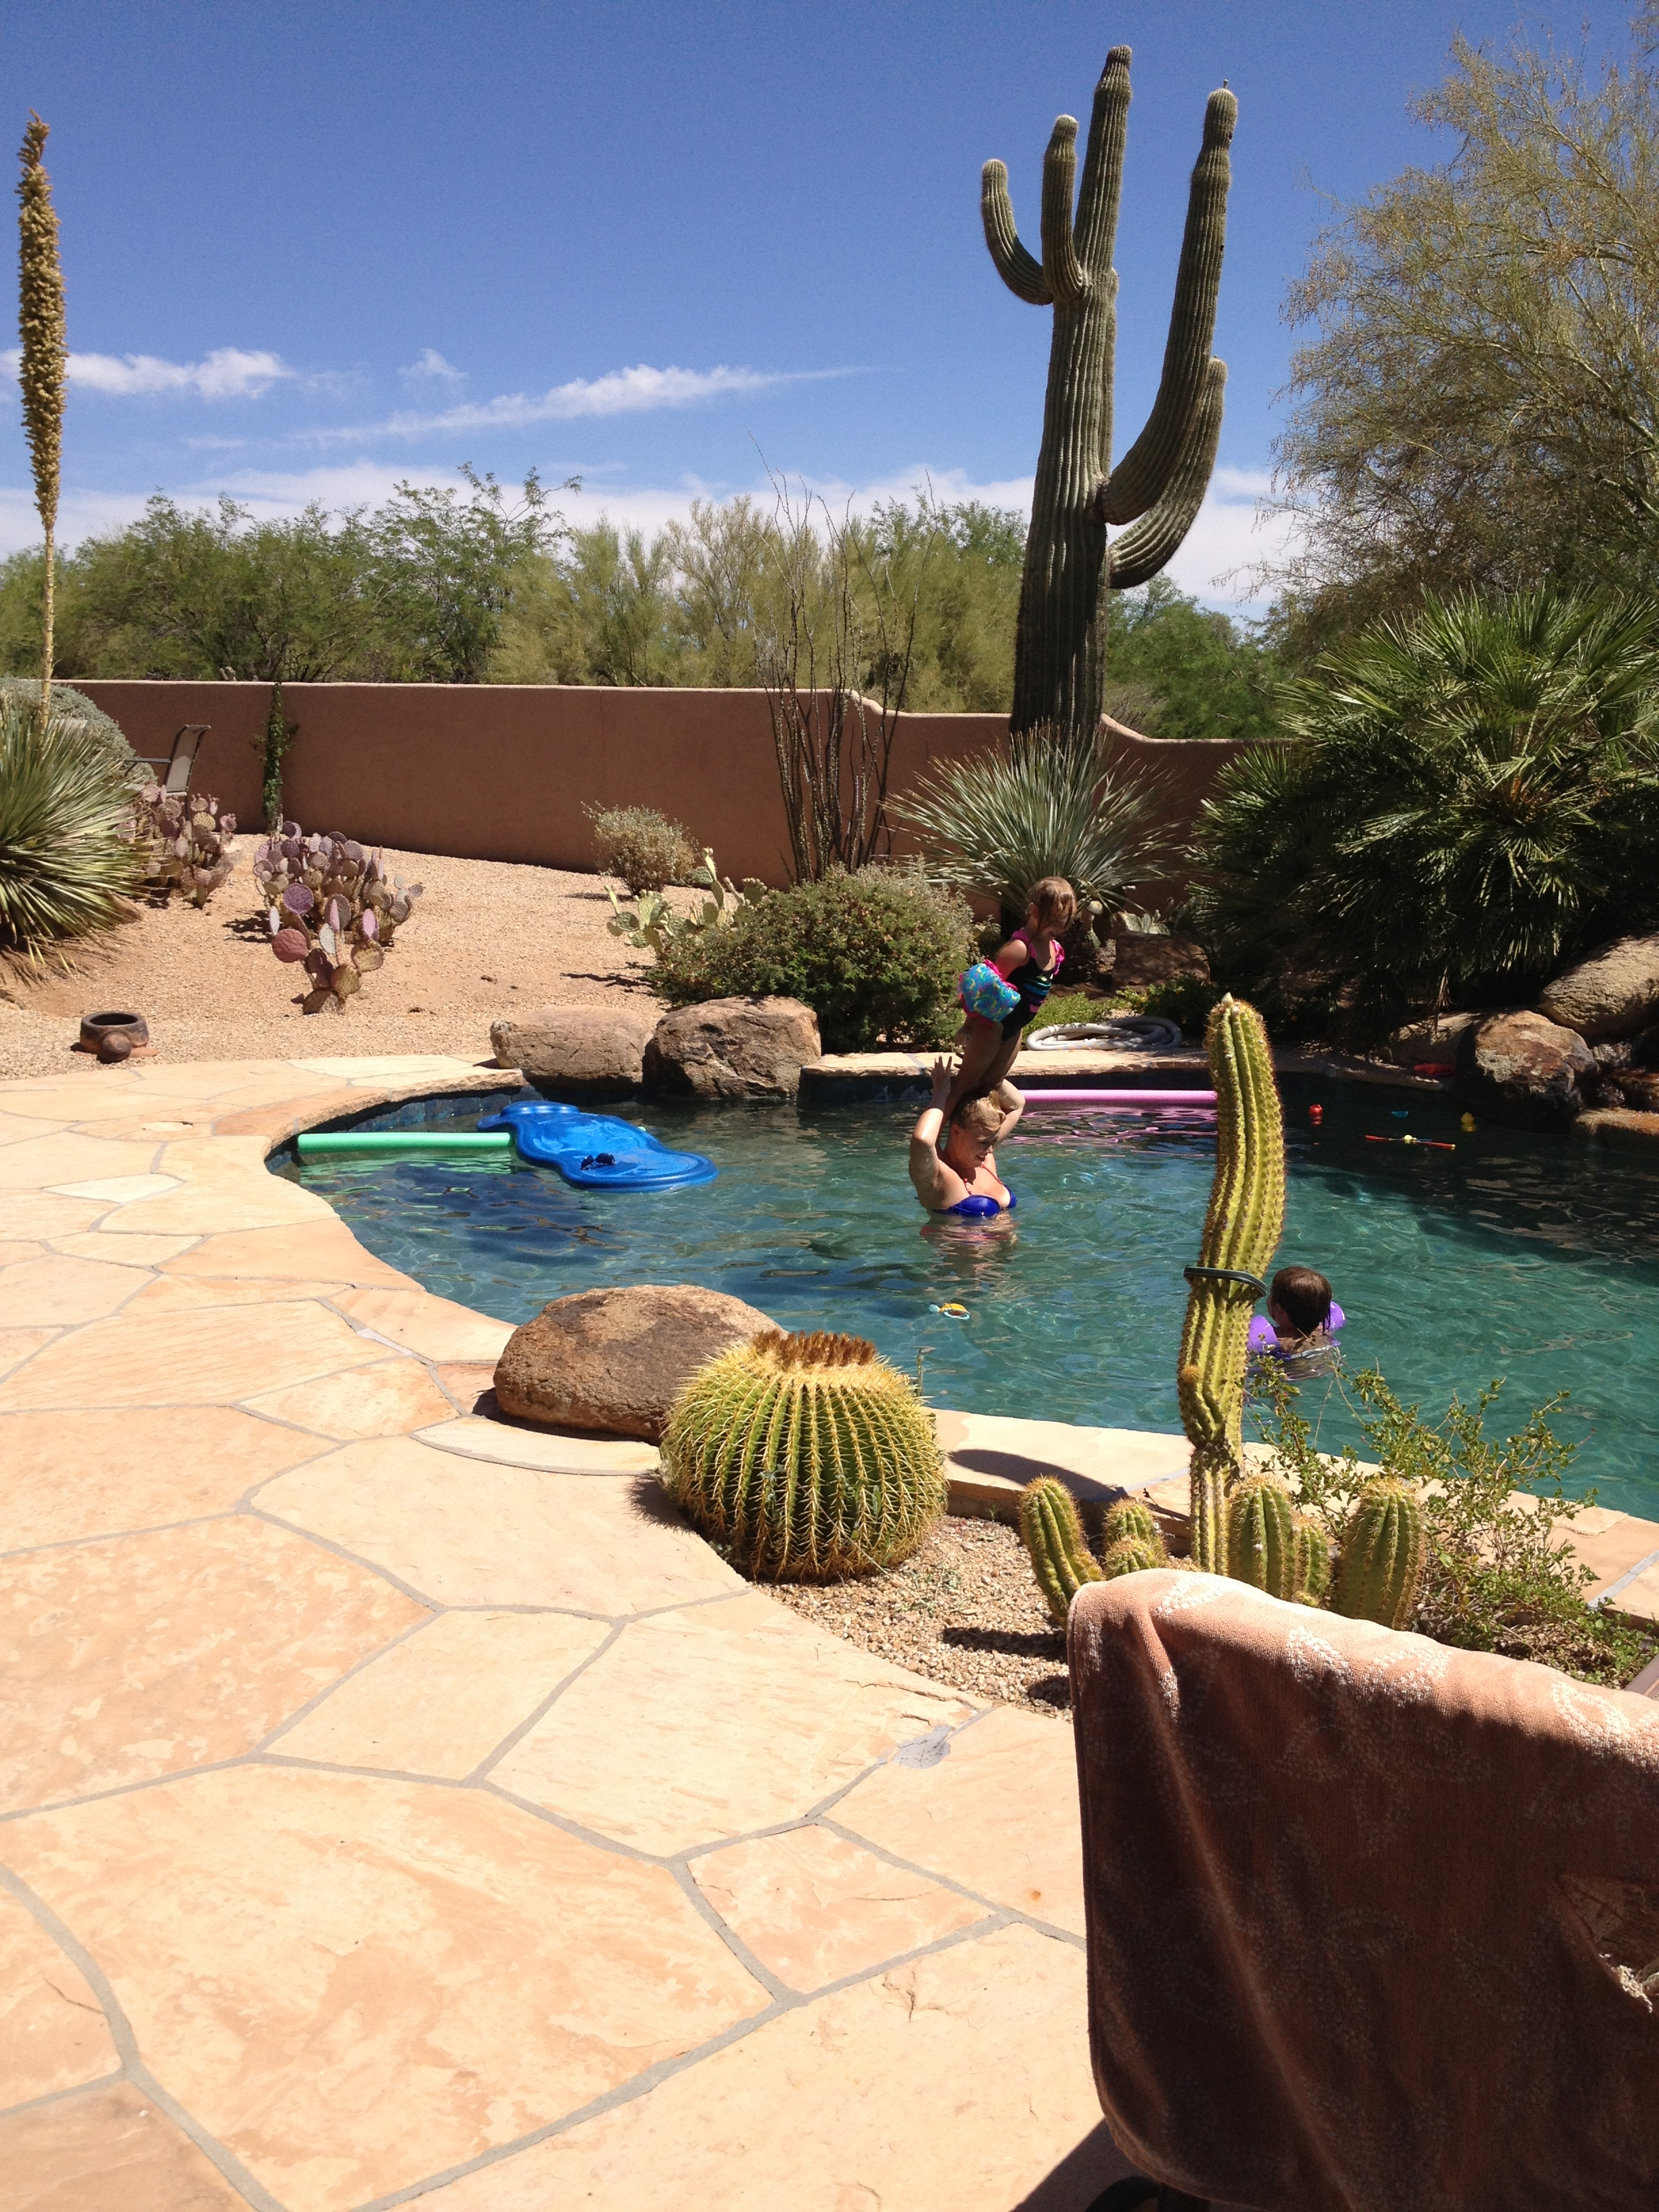 What Degrees Is It Outside >> What To Do When Its 110 Degrees Outside In Scottsdale